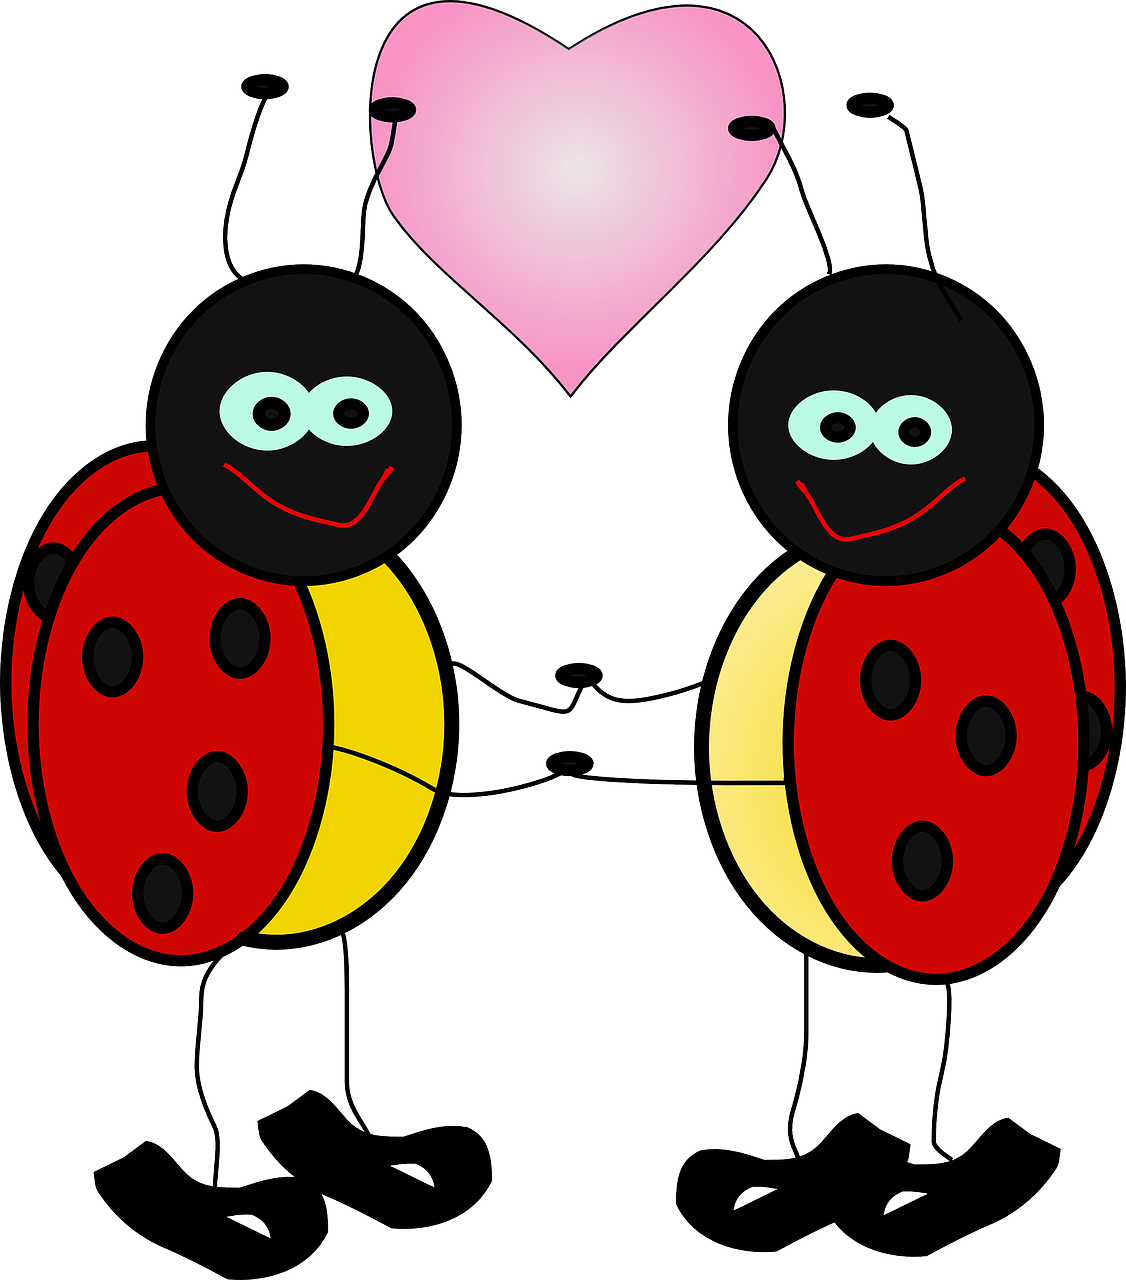 ladybugs,insect,lady,beetle,holding hands,heart,love,polka dolts,red,ladybird,summer,antenna,valentine,free vector graphics,free pictures, free photos, free images, royalty free, free illustrations, public domain